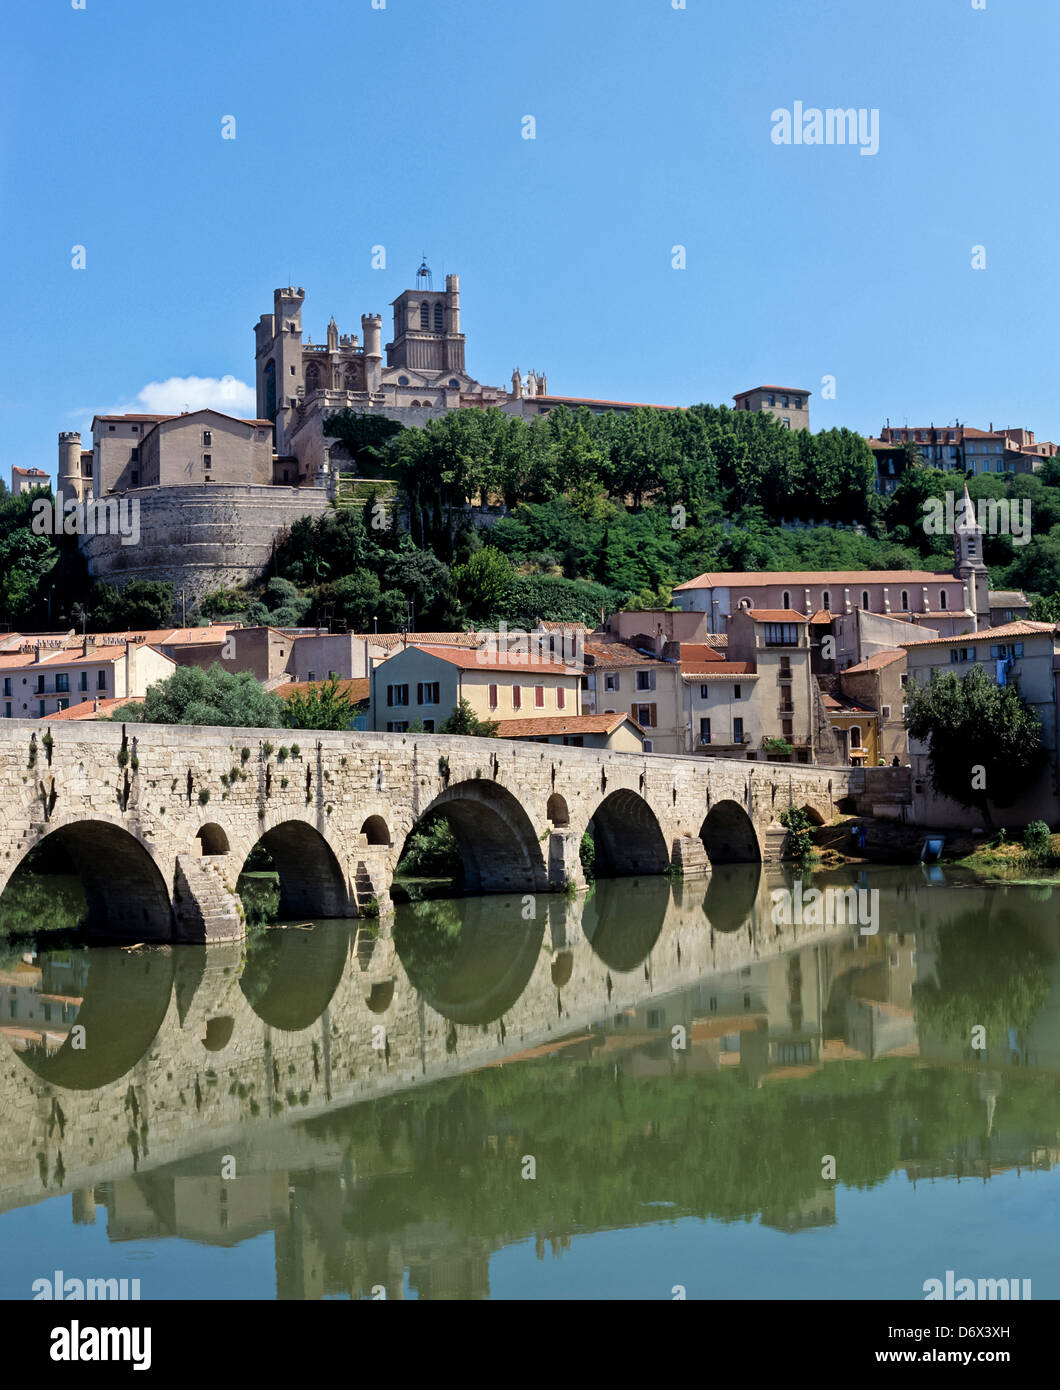 8526. Beziers & R Orb, Languedoc, France, Europe - Stock Image